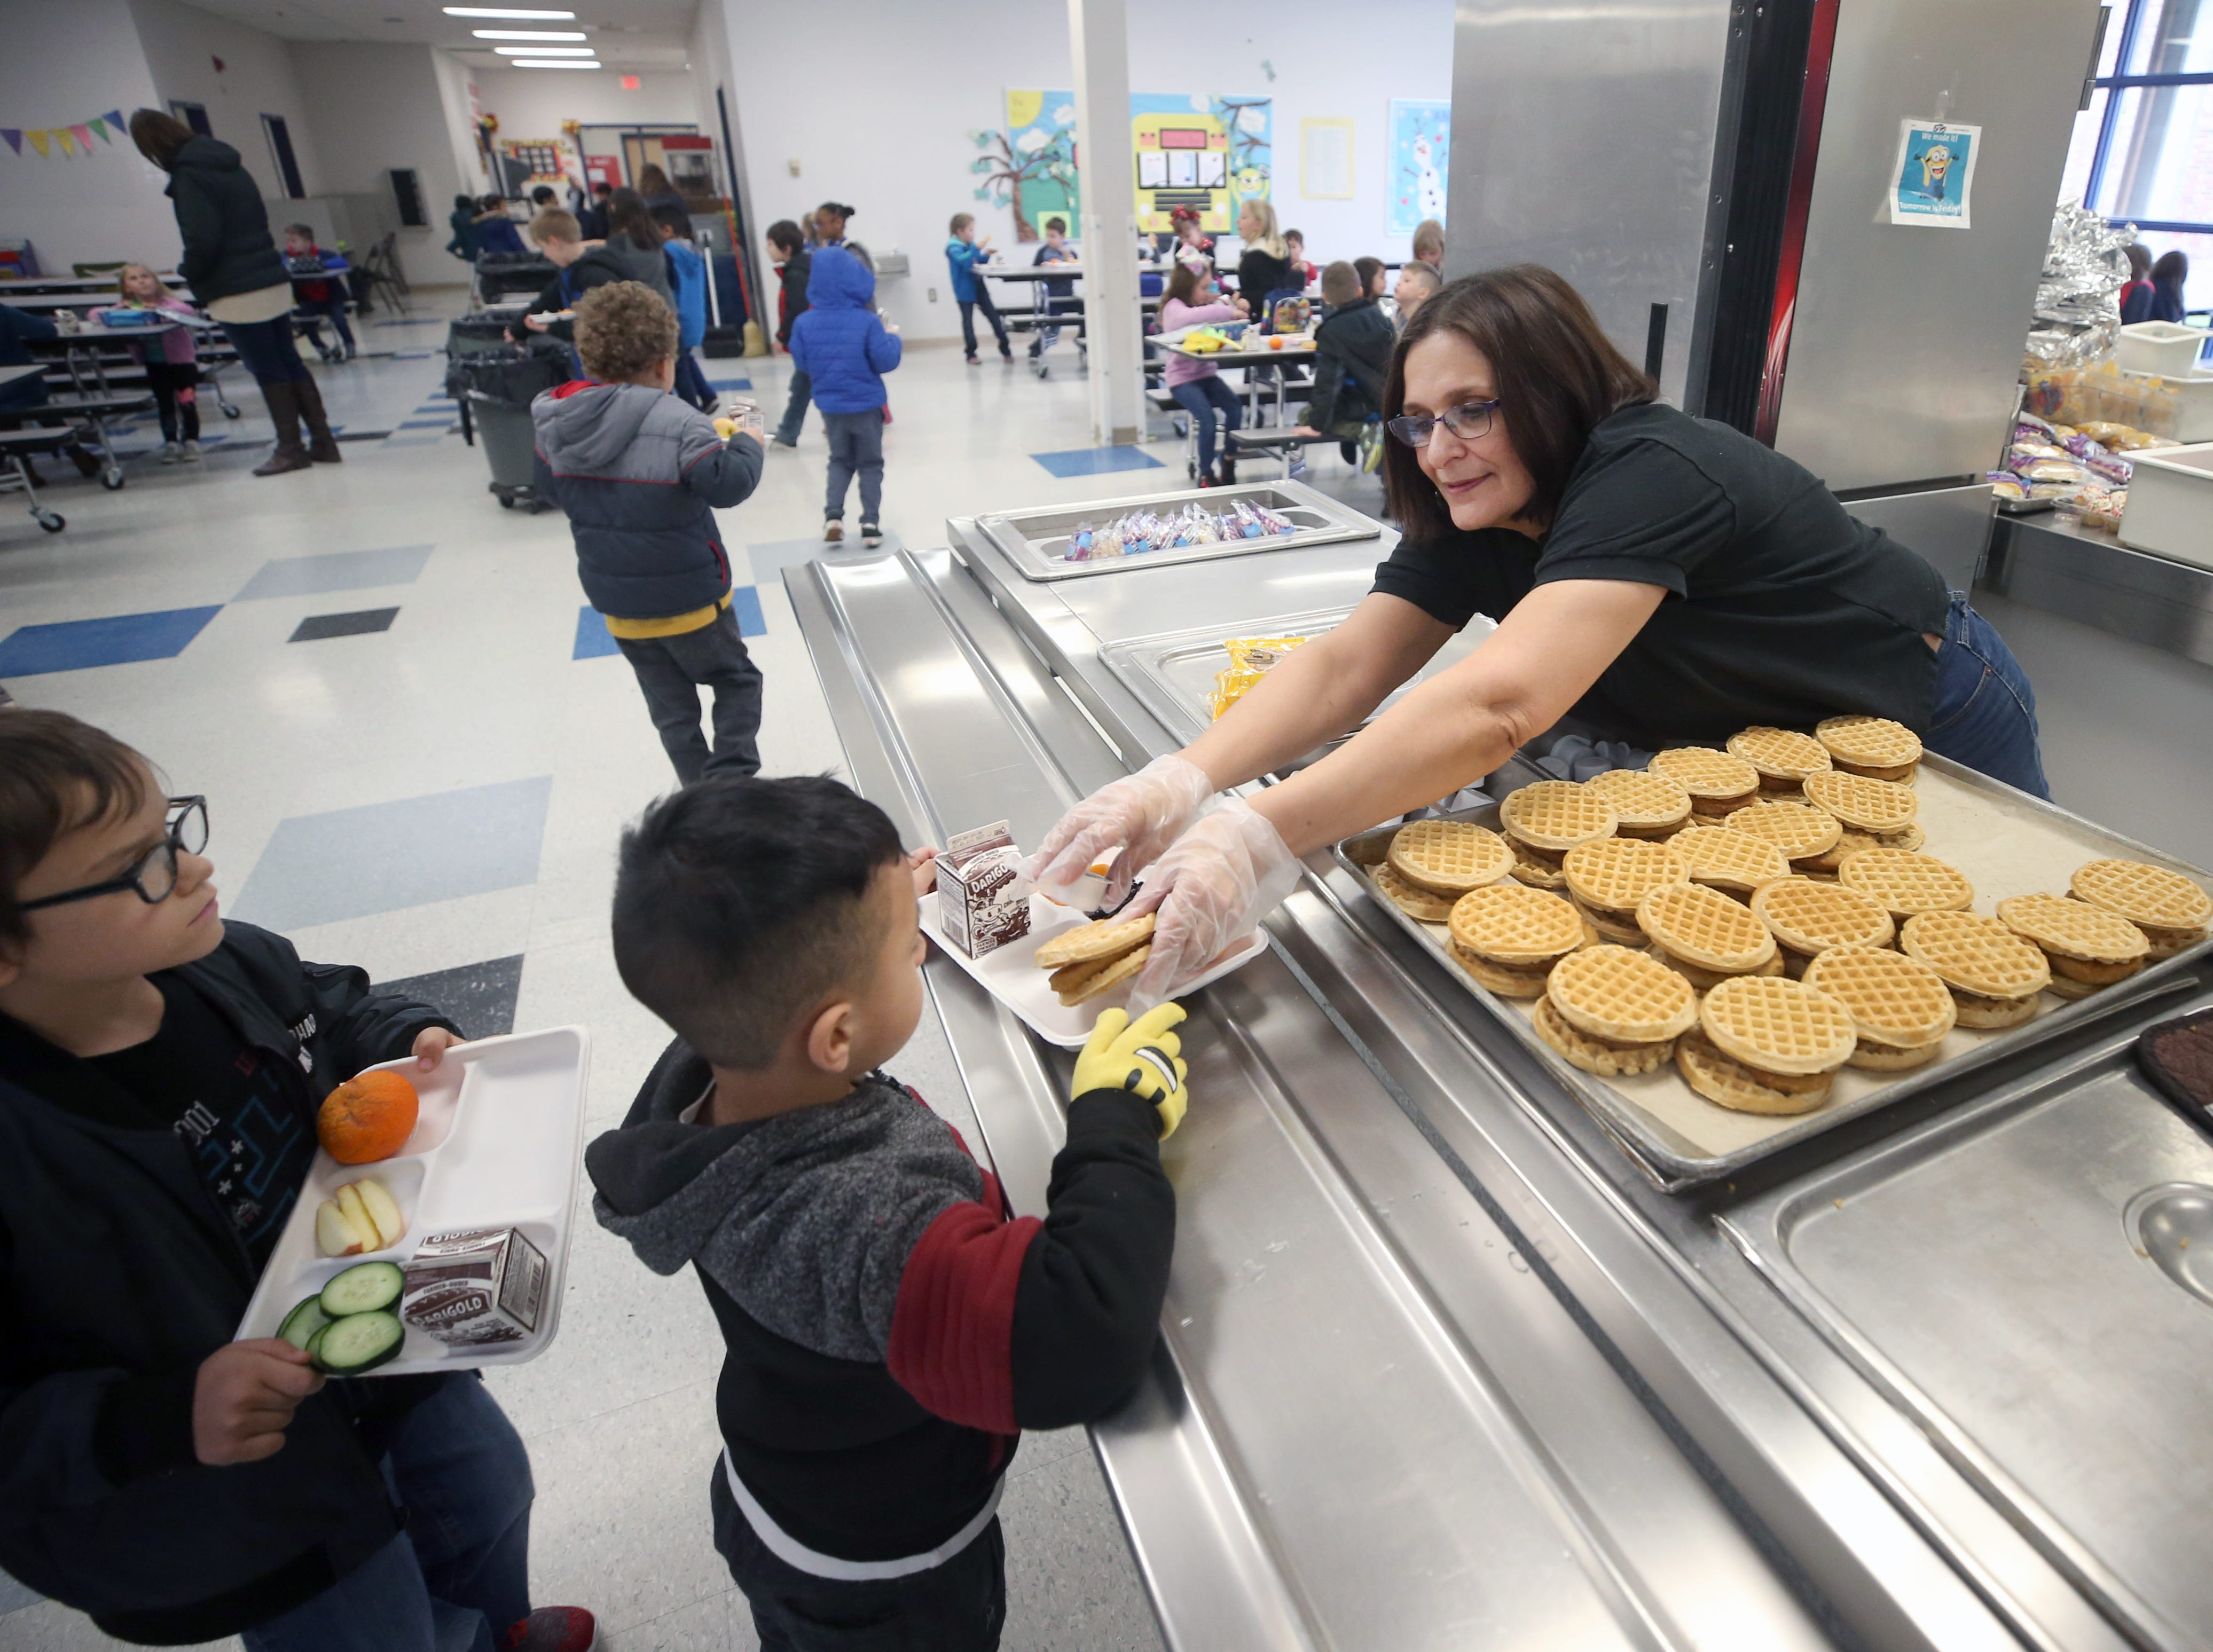 Lunch helper/server Laurie Sheridan puts waffles on a tray to a kindergarten student at East Port Orchard Elementary School on Friday, January, 18, 2019. Local school districts are reminding families affected by the government shutdown that their students may be eligible for free and reduced lunch prices at school.